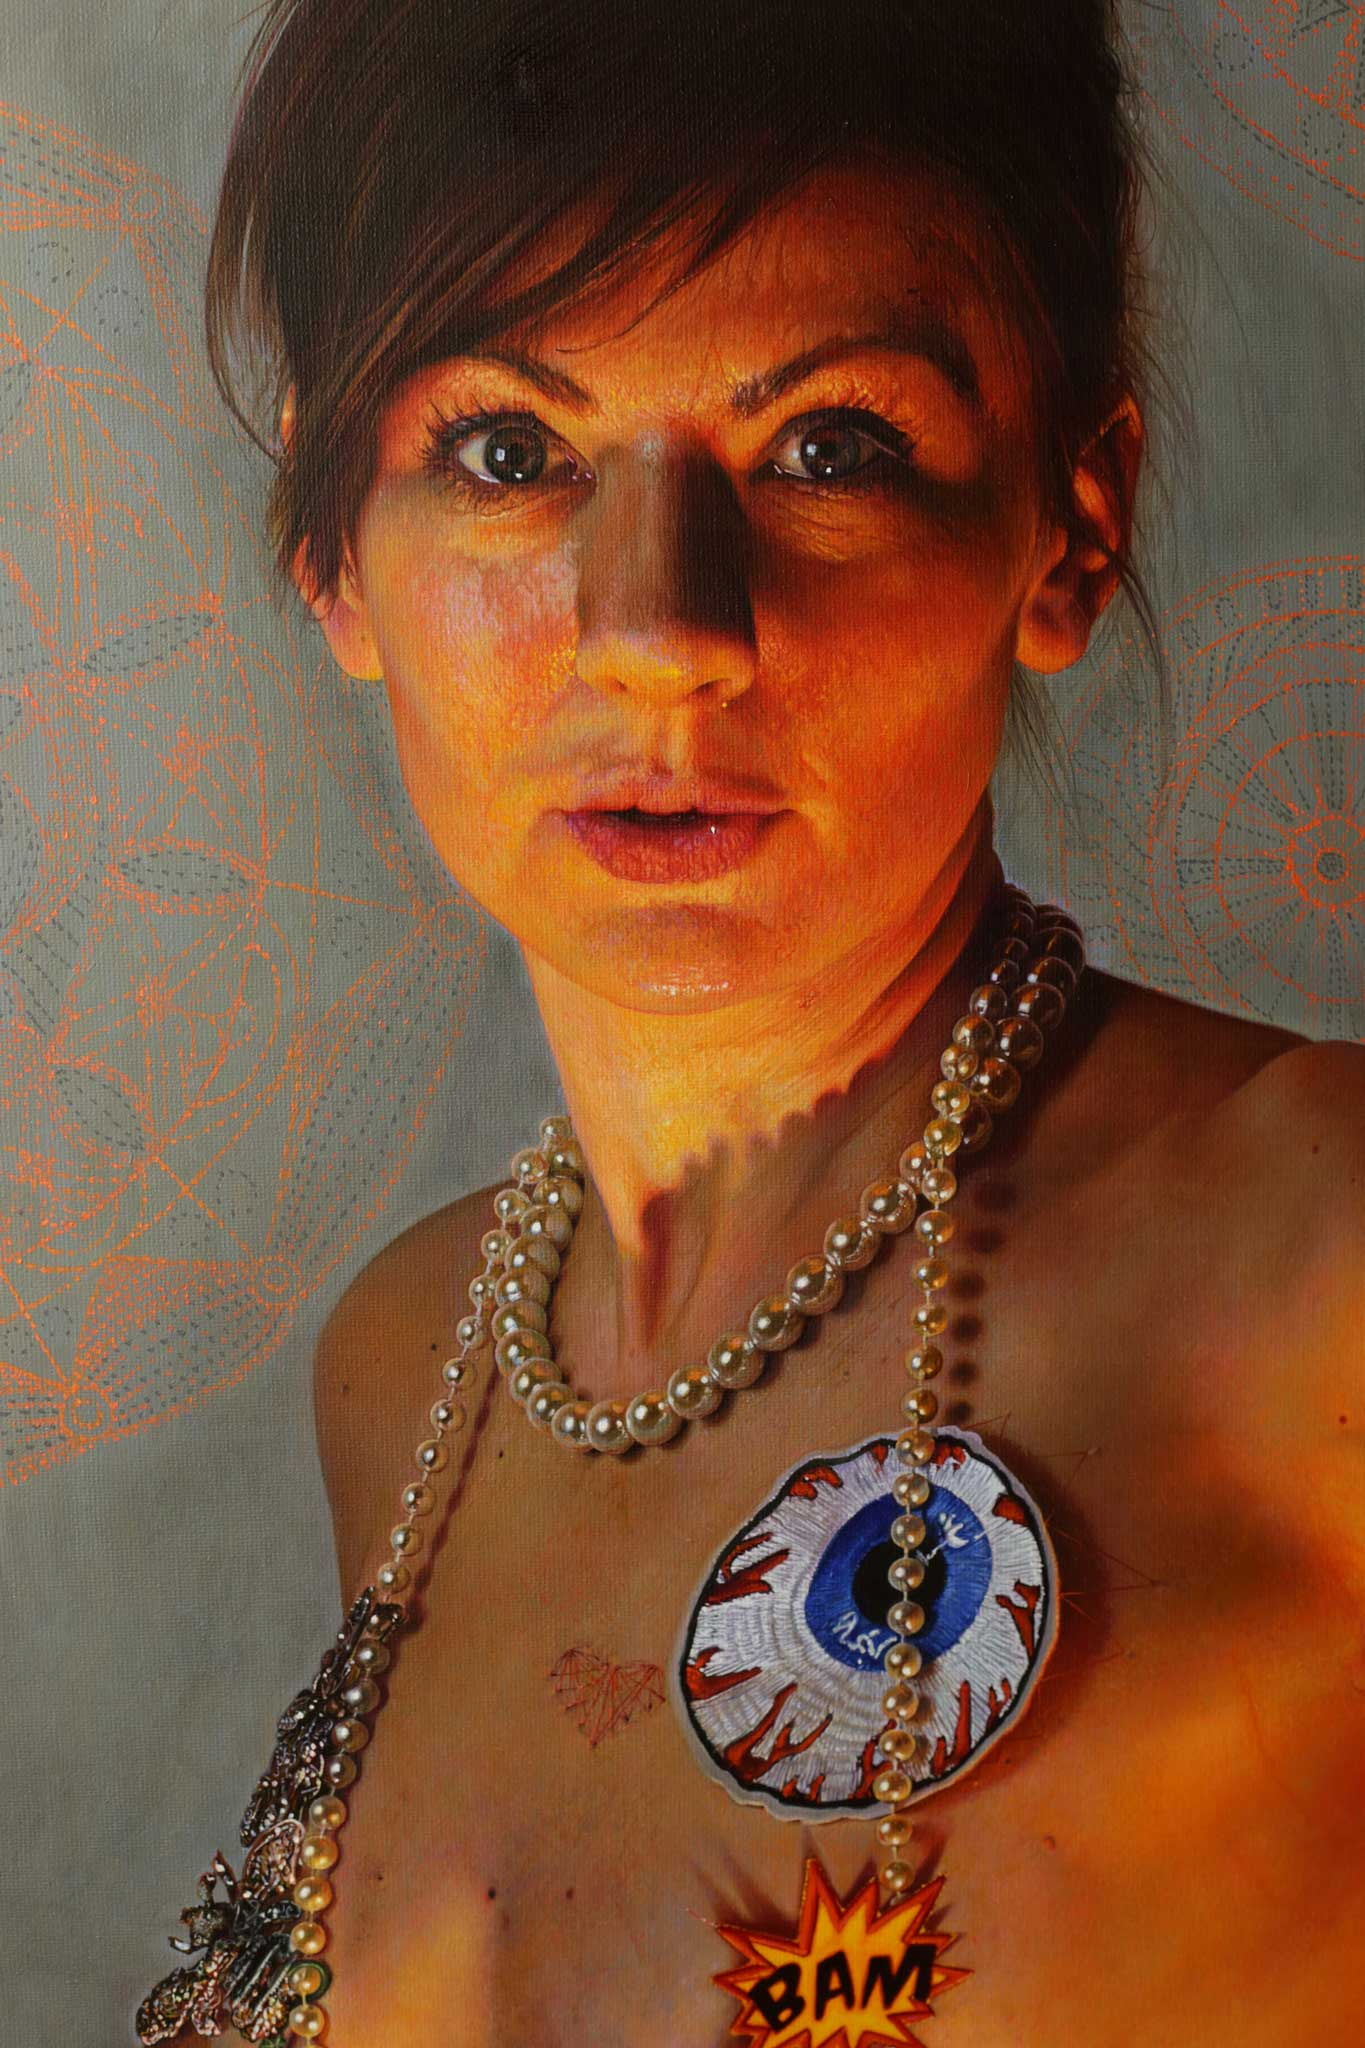 Contemporary figure paintings - Anna Wypych - RealismToday.com